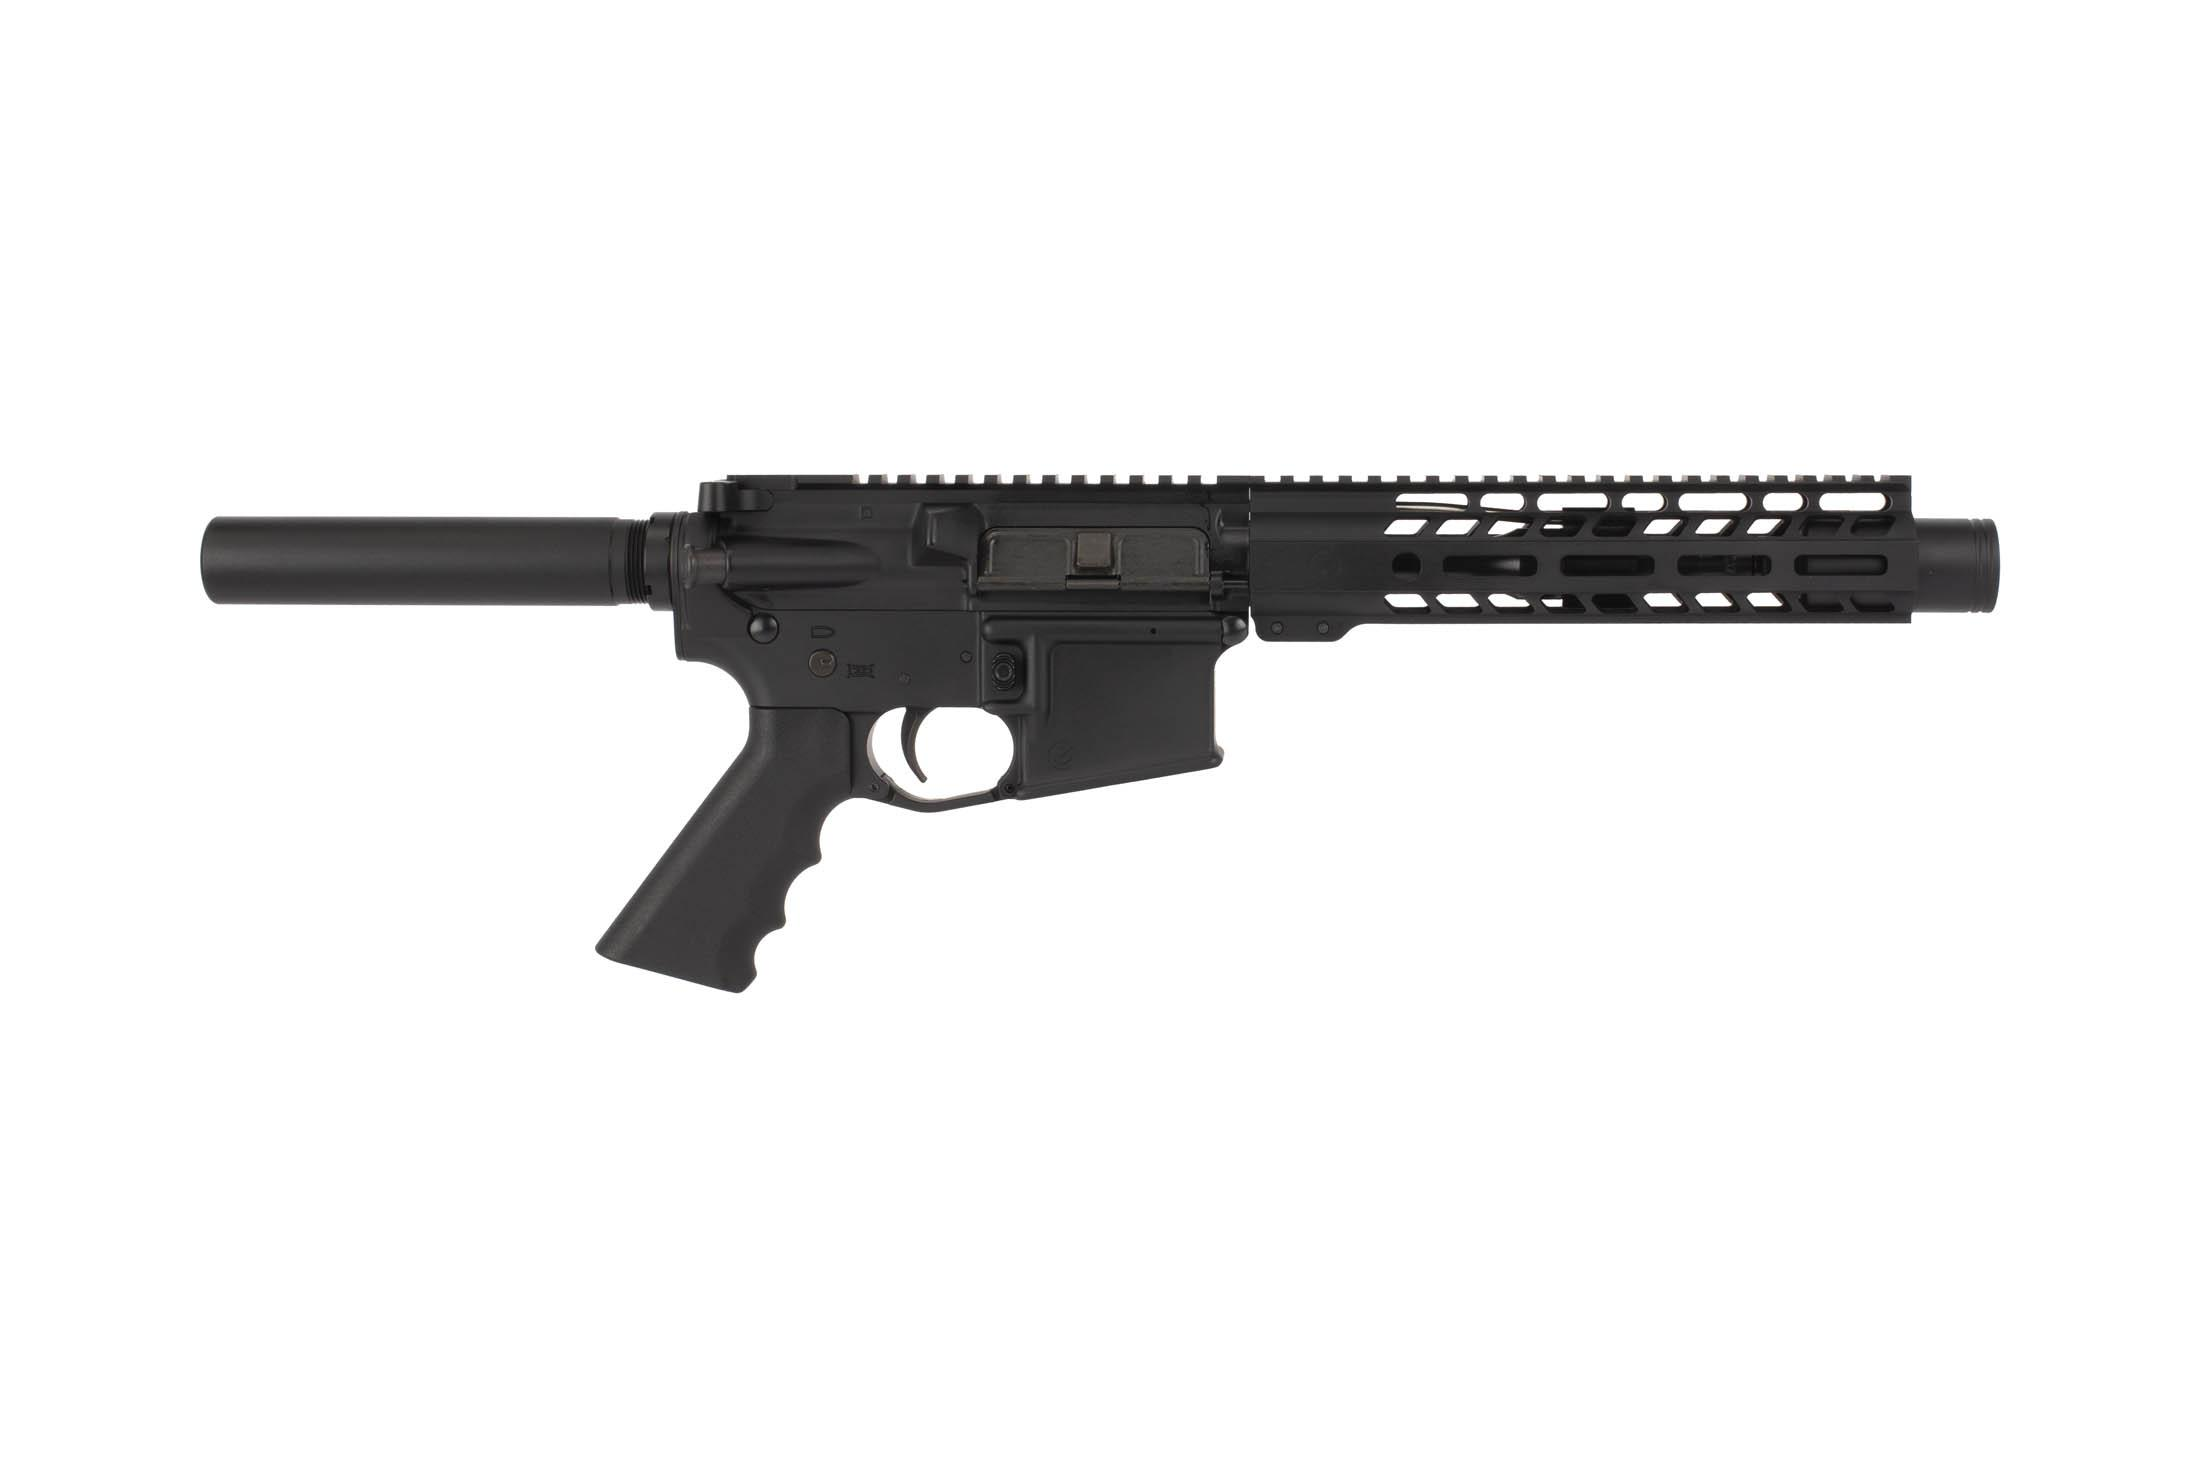 Ghost Firearms 7.5in 5.56 NATO Complete AR-15 pistol with reliable pistol length gas system